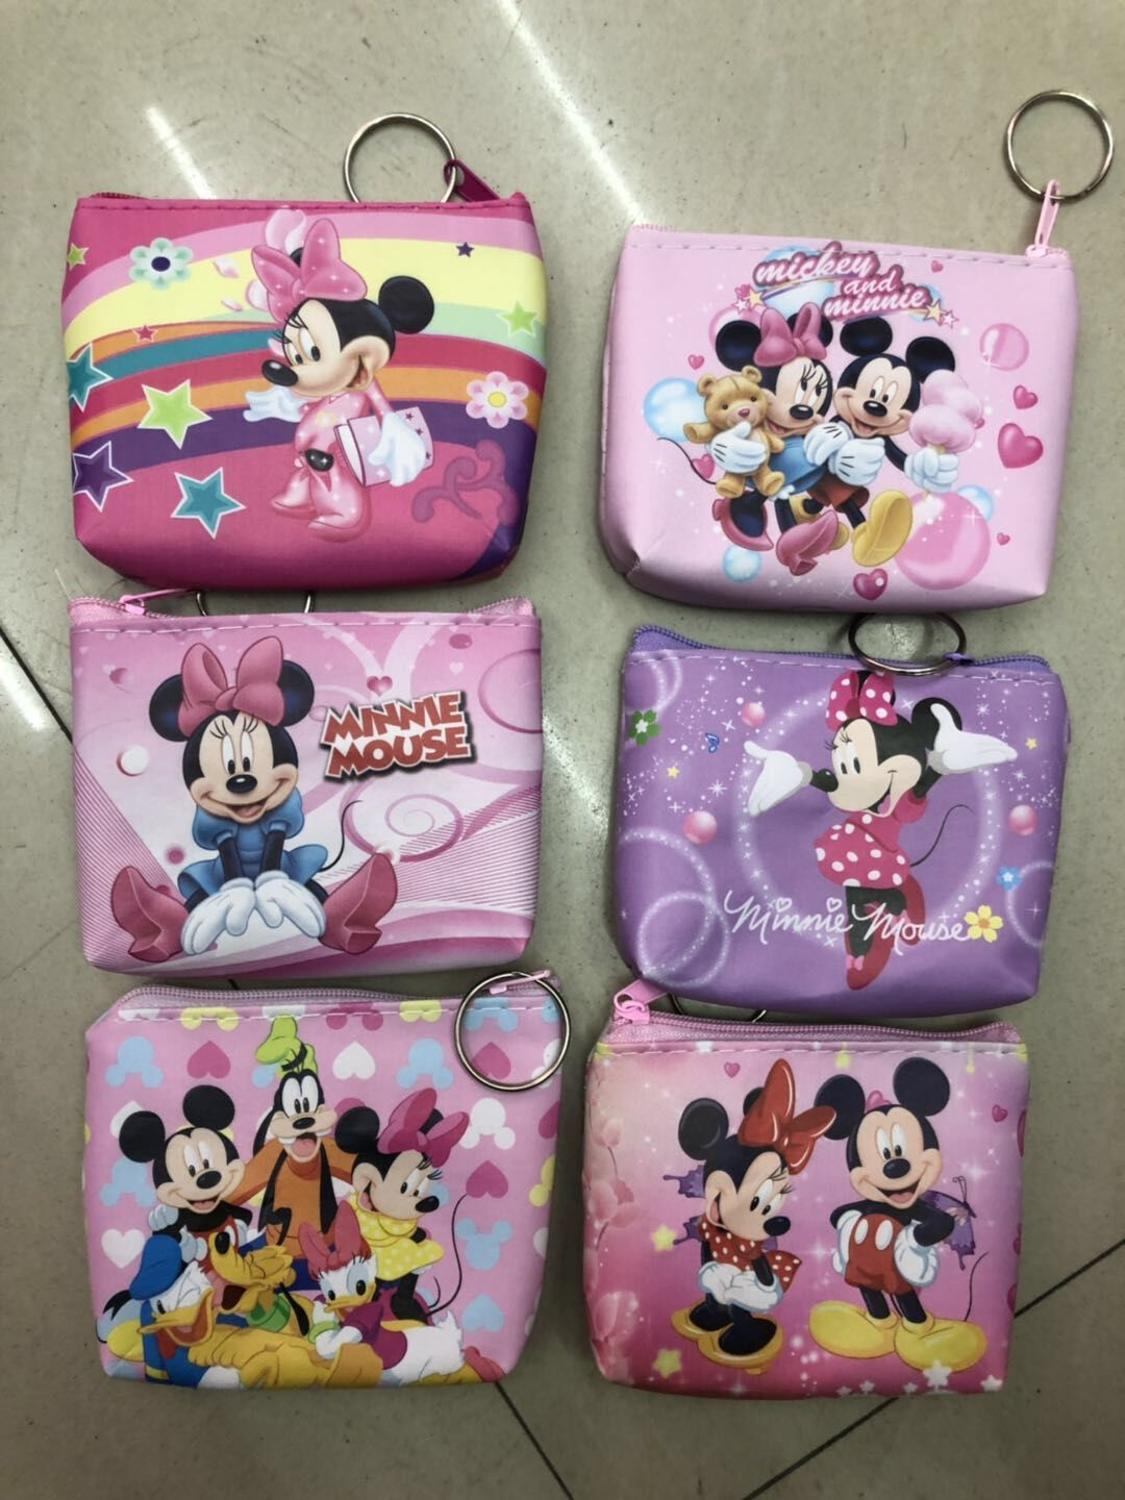 Disney New Coin Purse Fresh Mini Change Storage Bag Creative Cartoon Mickey Mouse Minnie Key Case Ladies Wallet TSUM